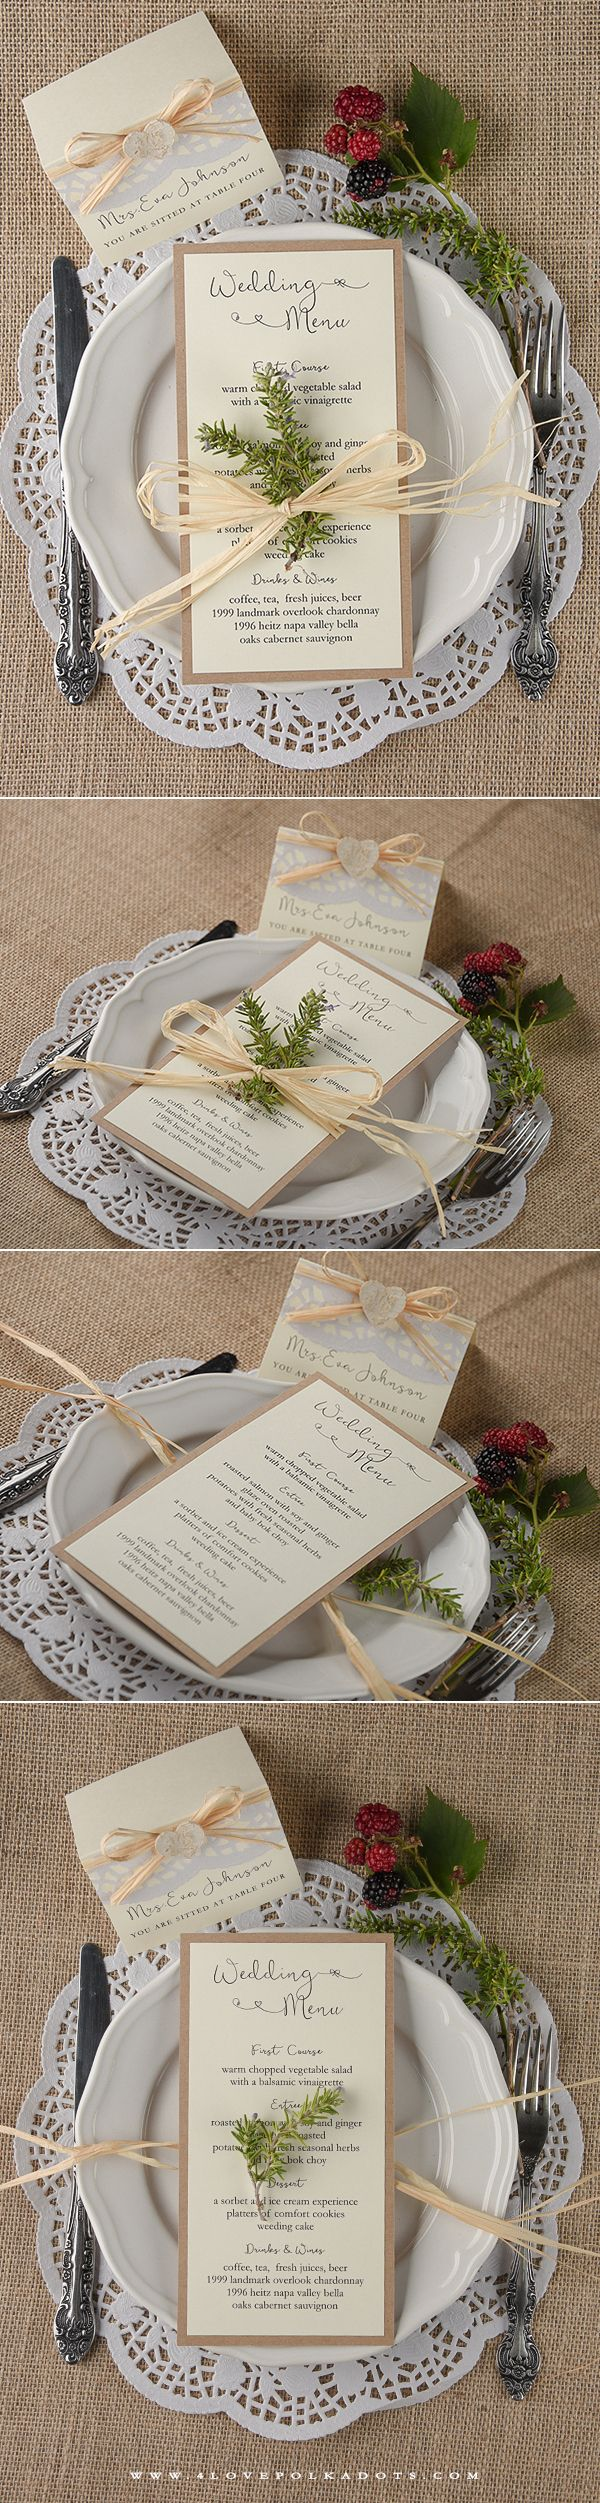 Wedding Menu Card 8 best Wedding Menus